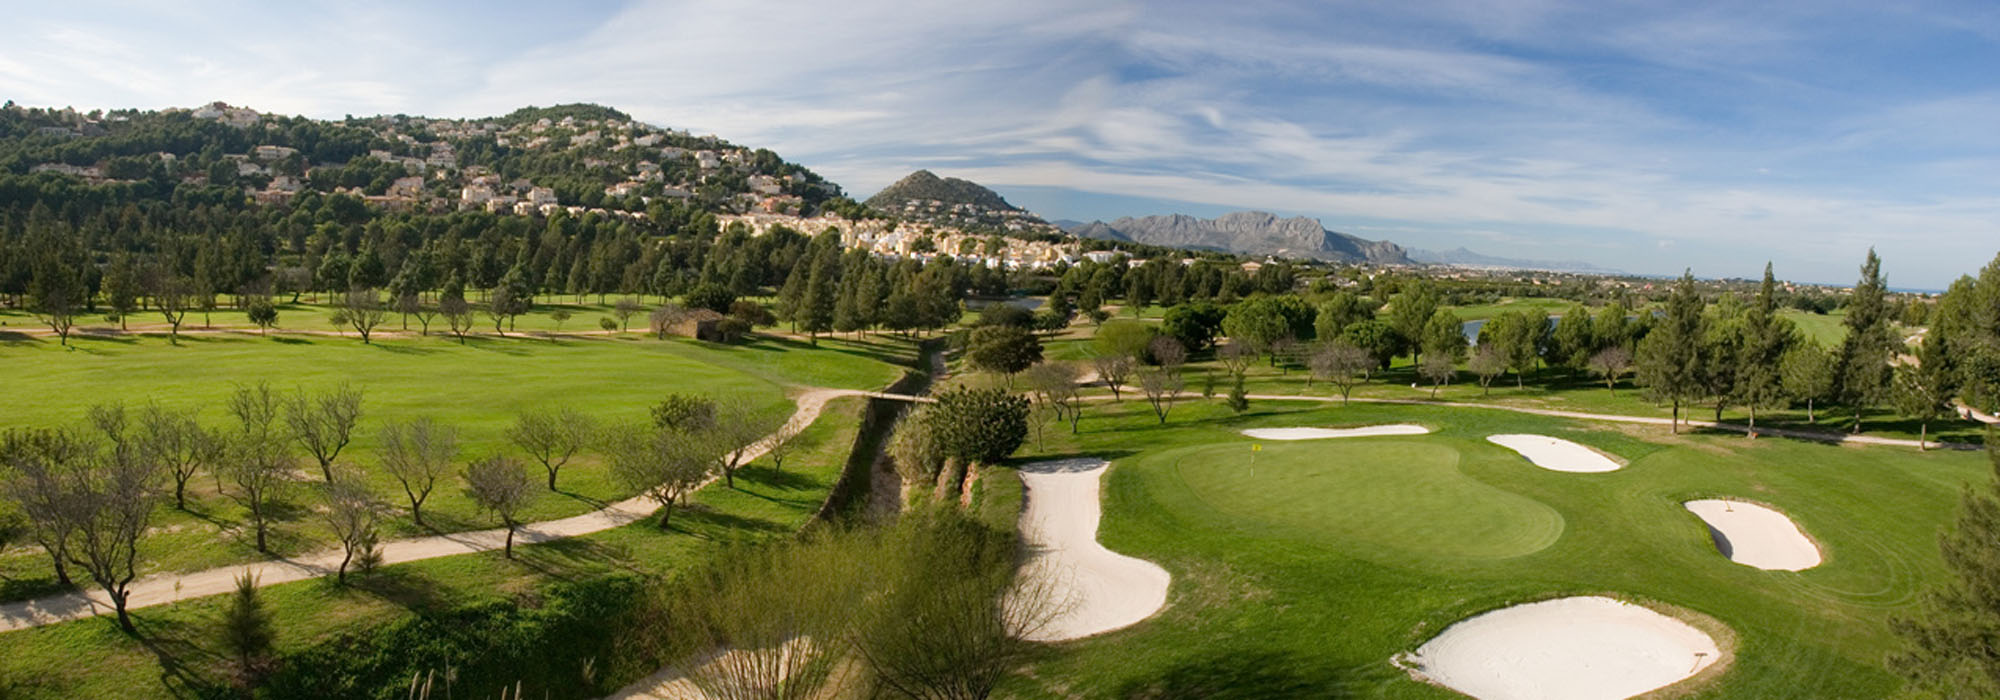 27 hole La Sella golf course